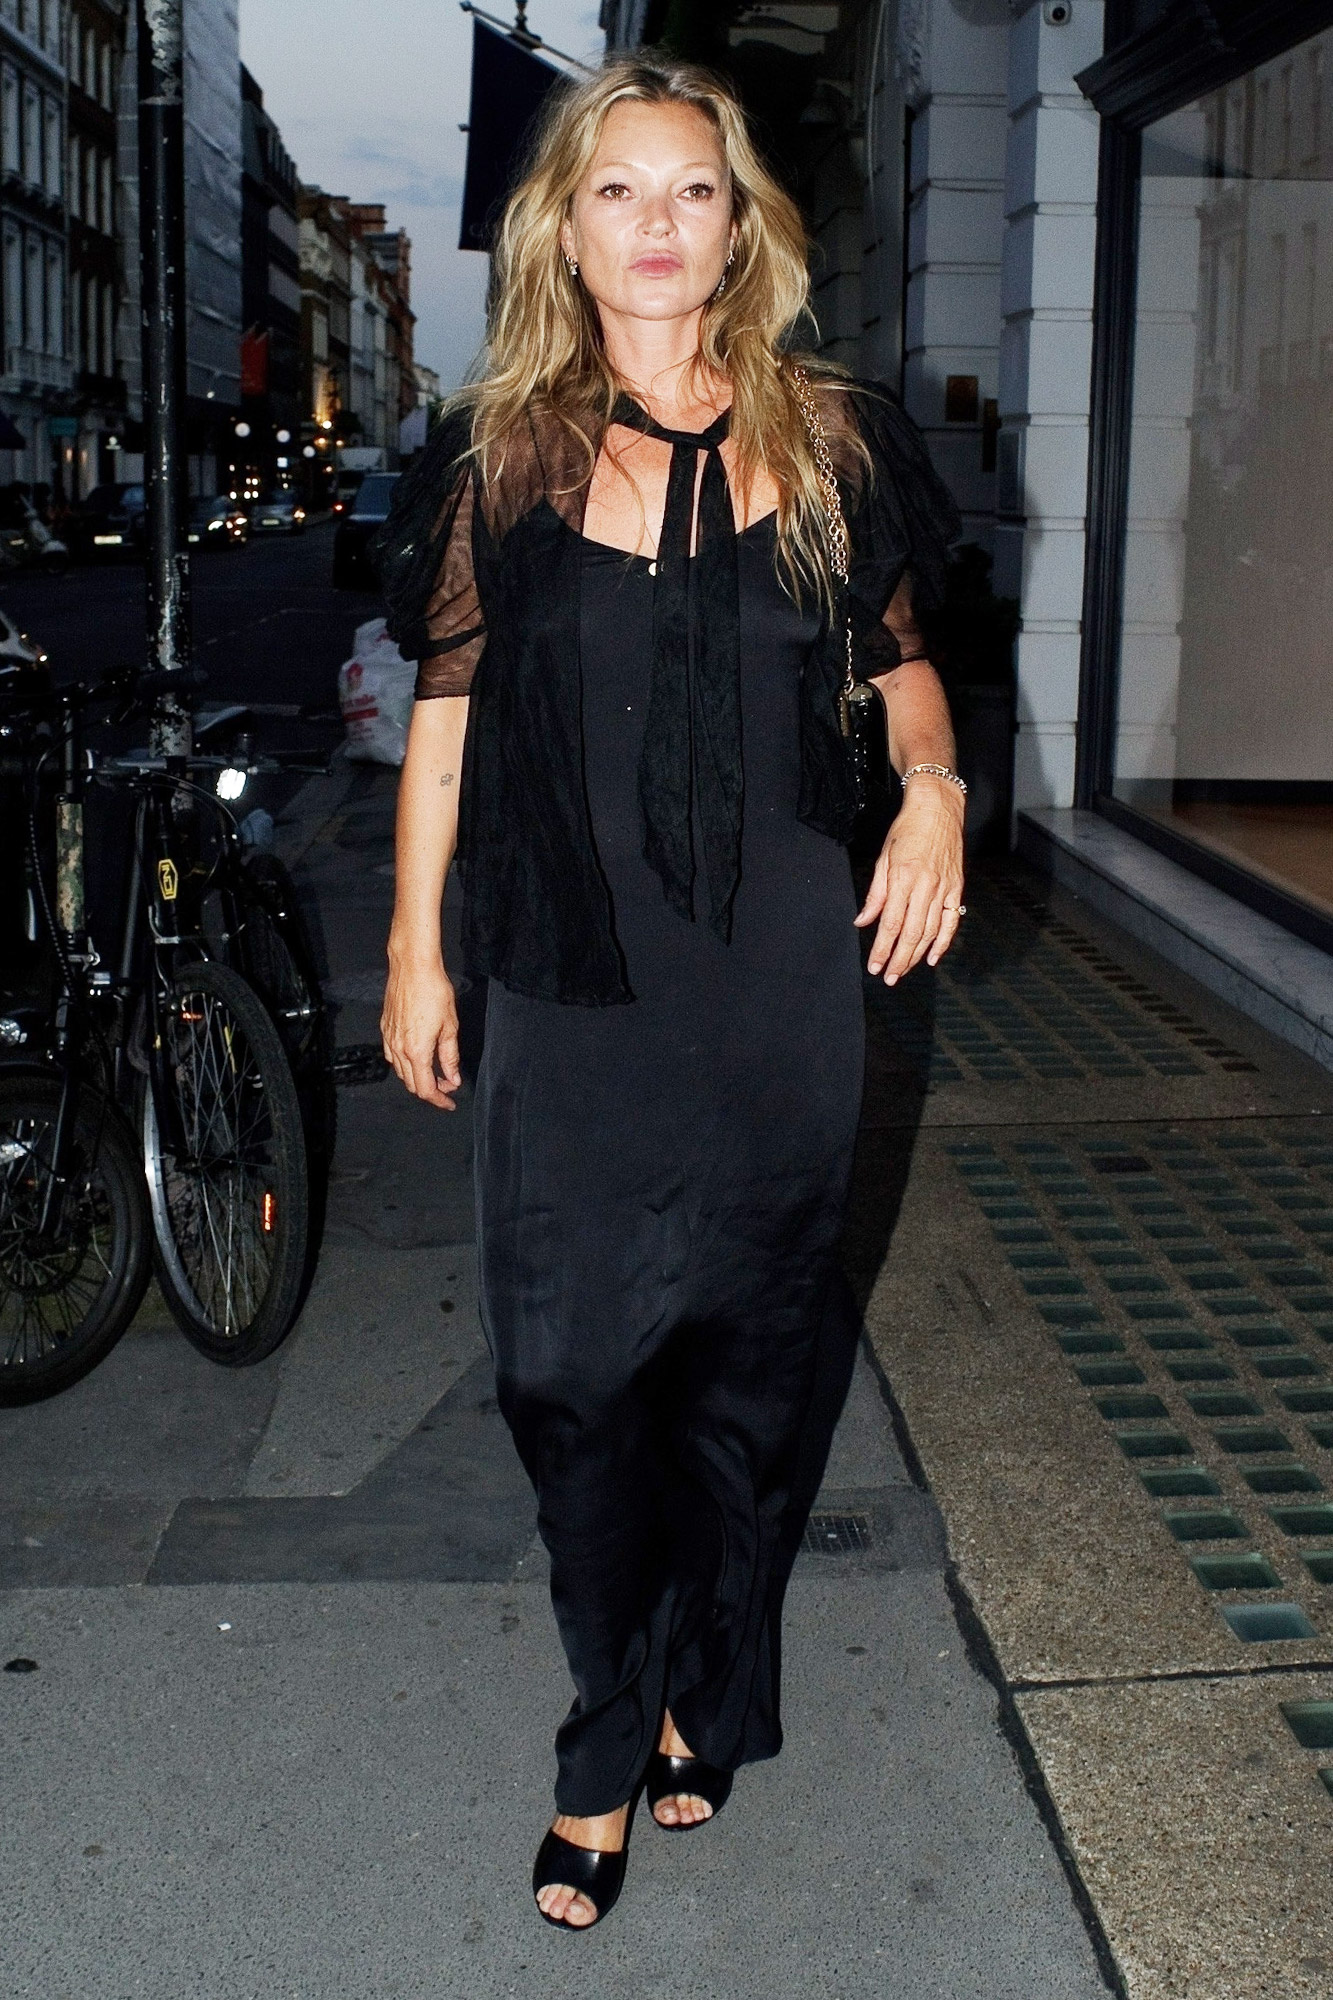 English supermodel and businesswoman, Kate Moss arriving at a party in Mayfair, London.